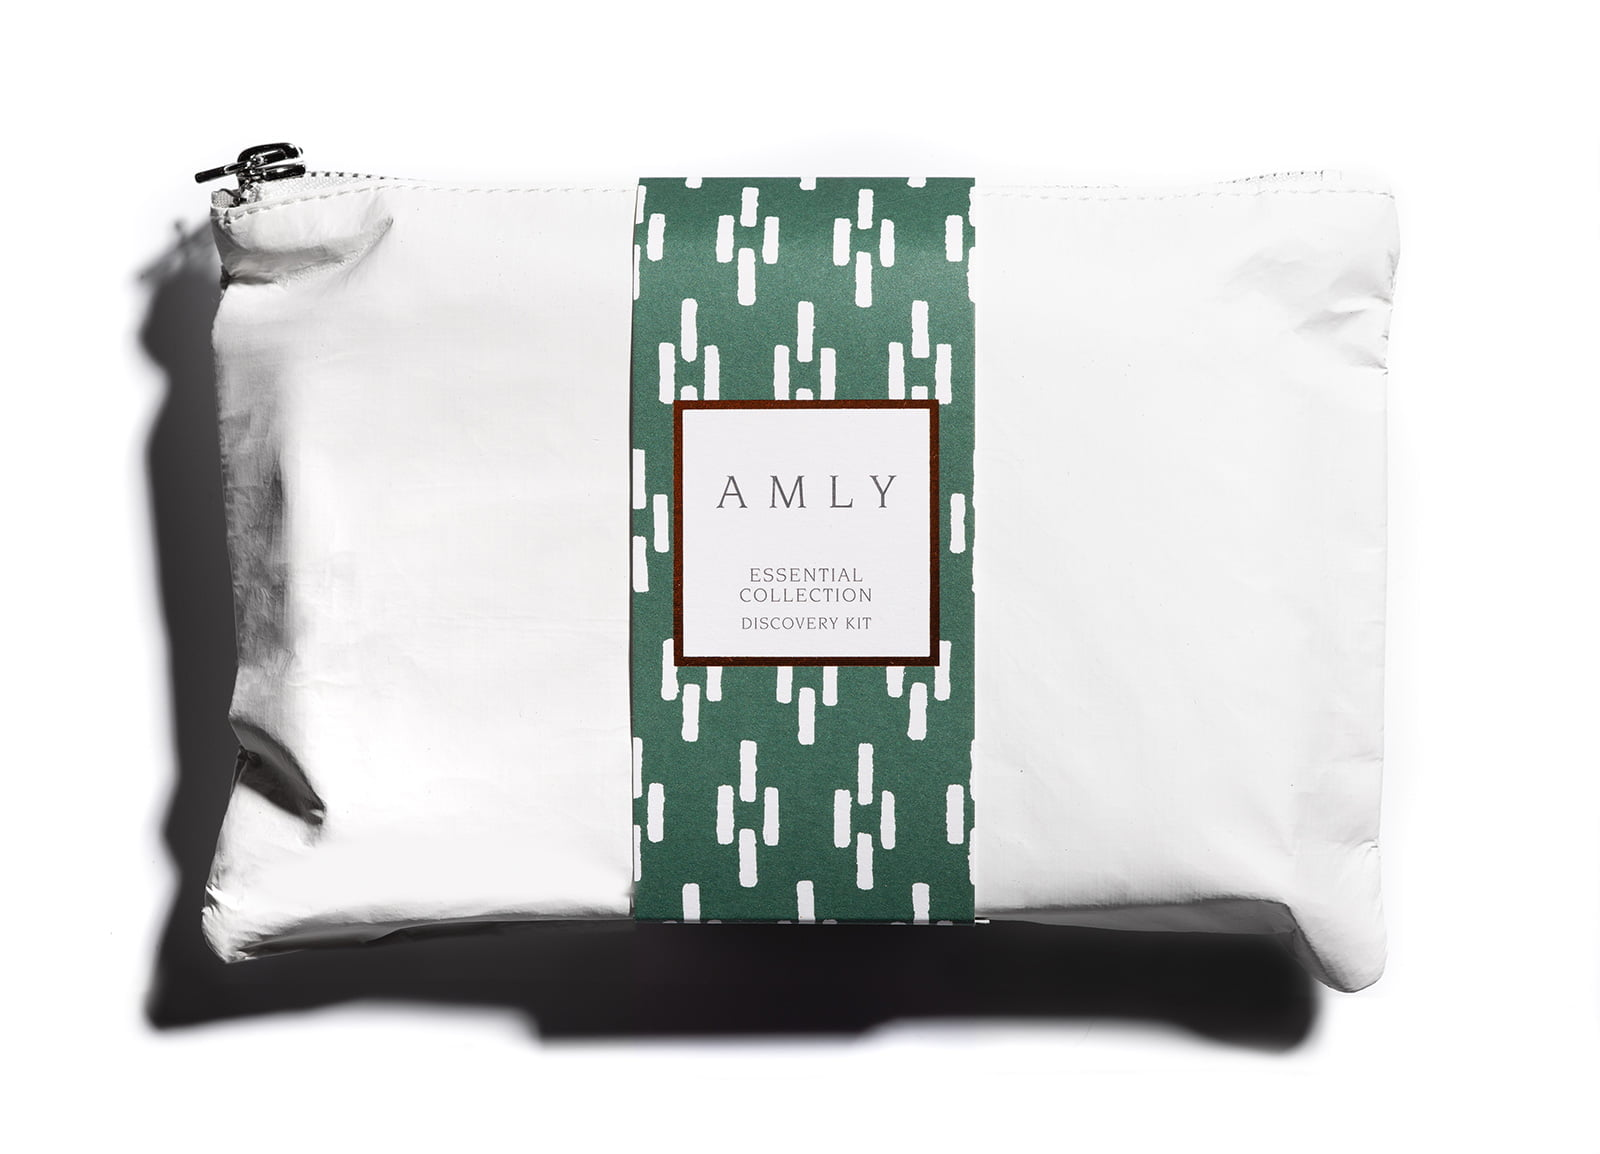 AMLY Skincare pouch with the 'essential collection' discovery set of AMLY mini botanical skincare bottles 2